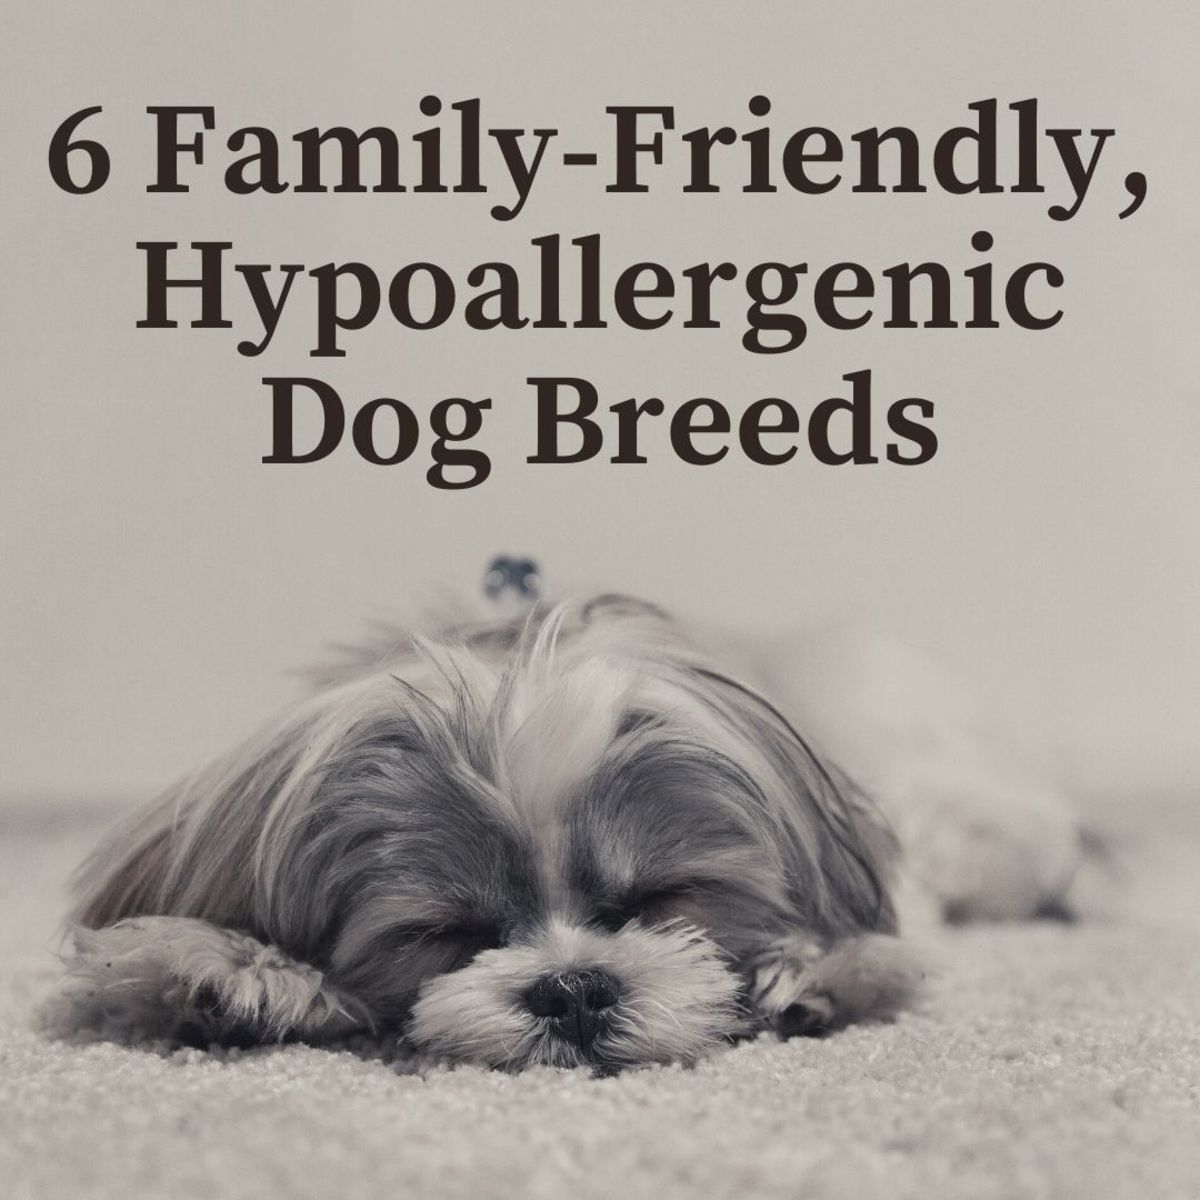 6 Hypoallergenic Dog Breeds That Are Great With Kids